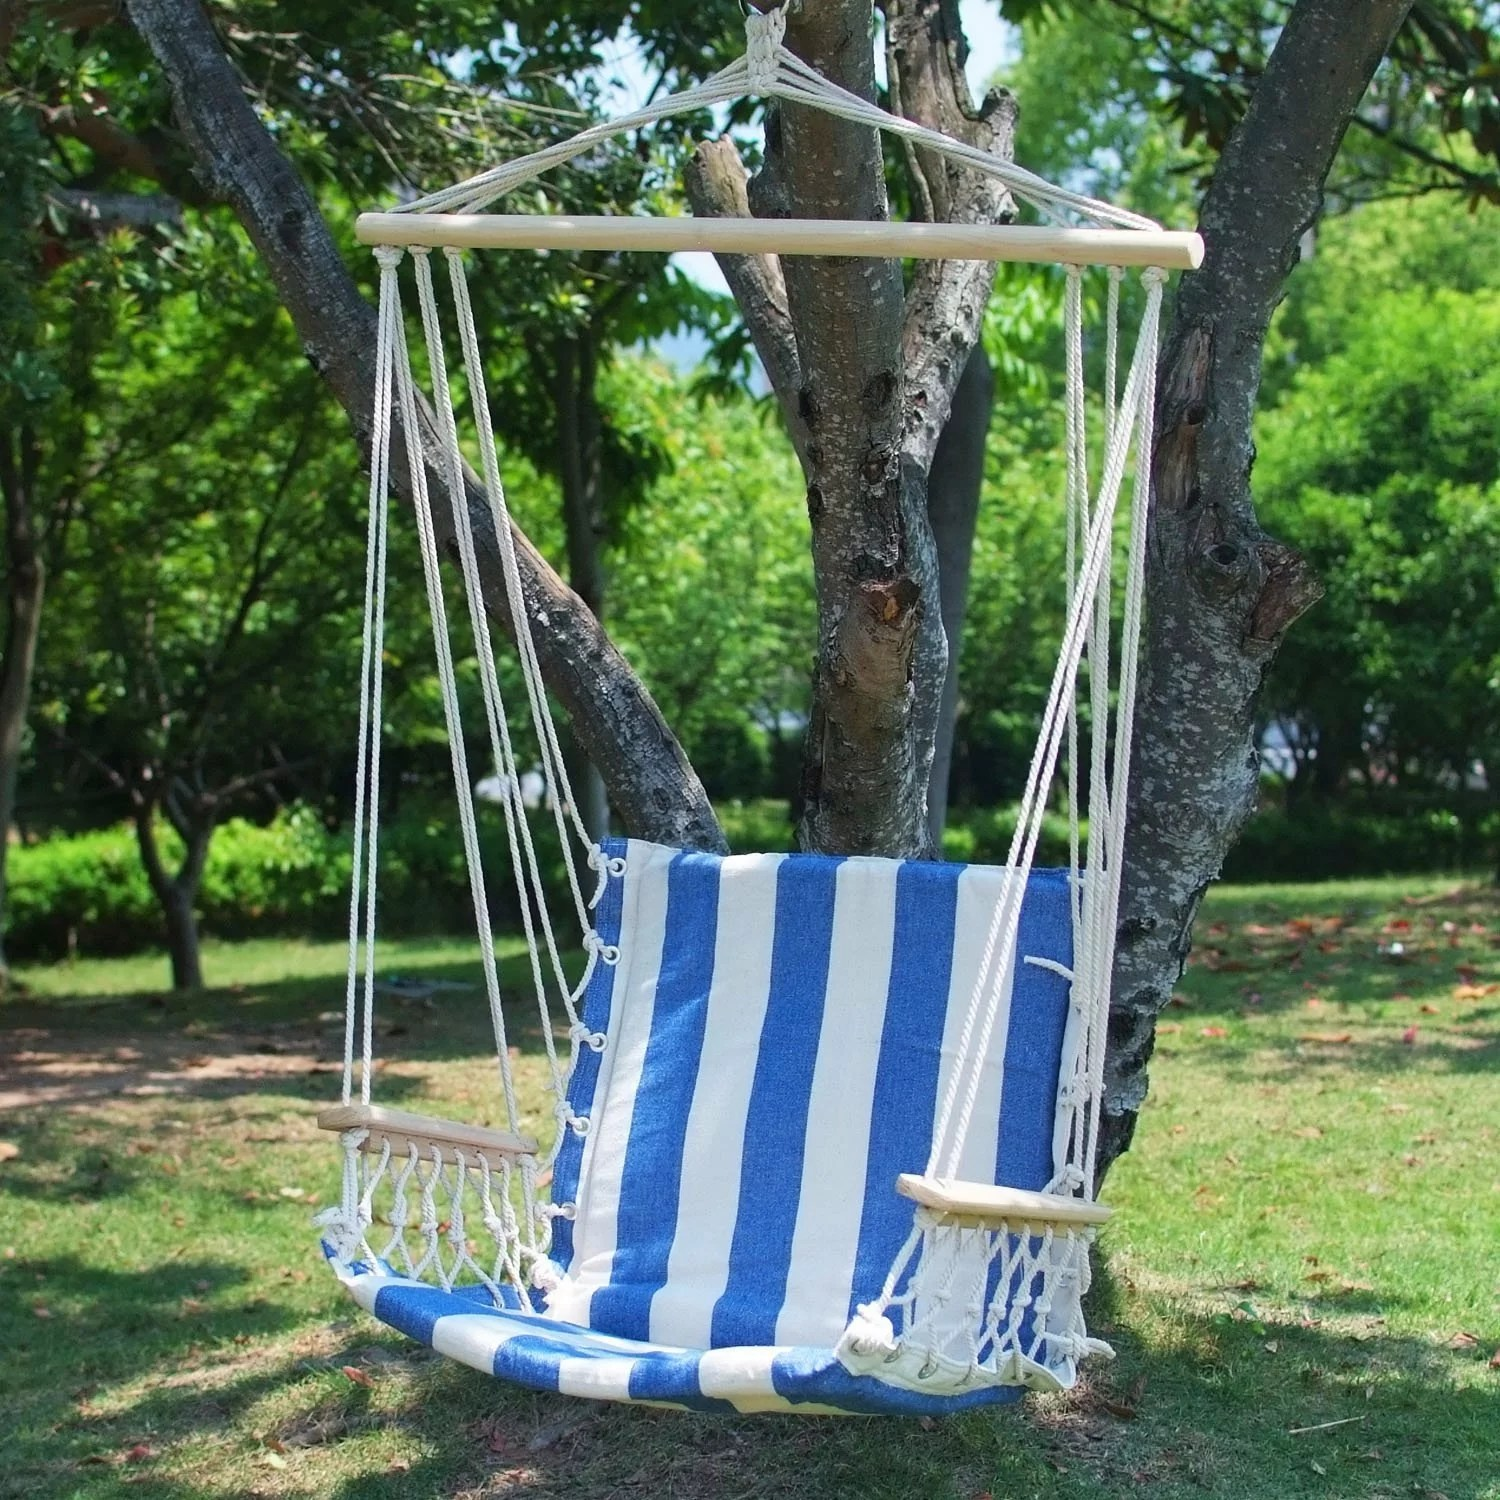 hanging chair tree best chairs geneva espresso wood glider reviews adecotrading naval cotton fabric canvas